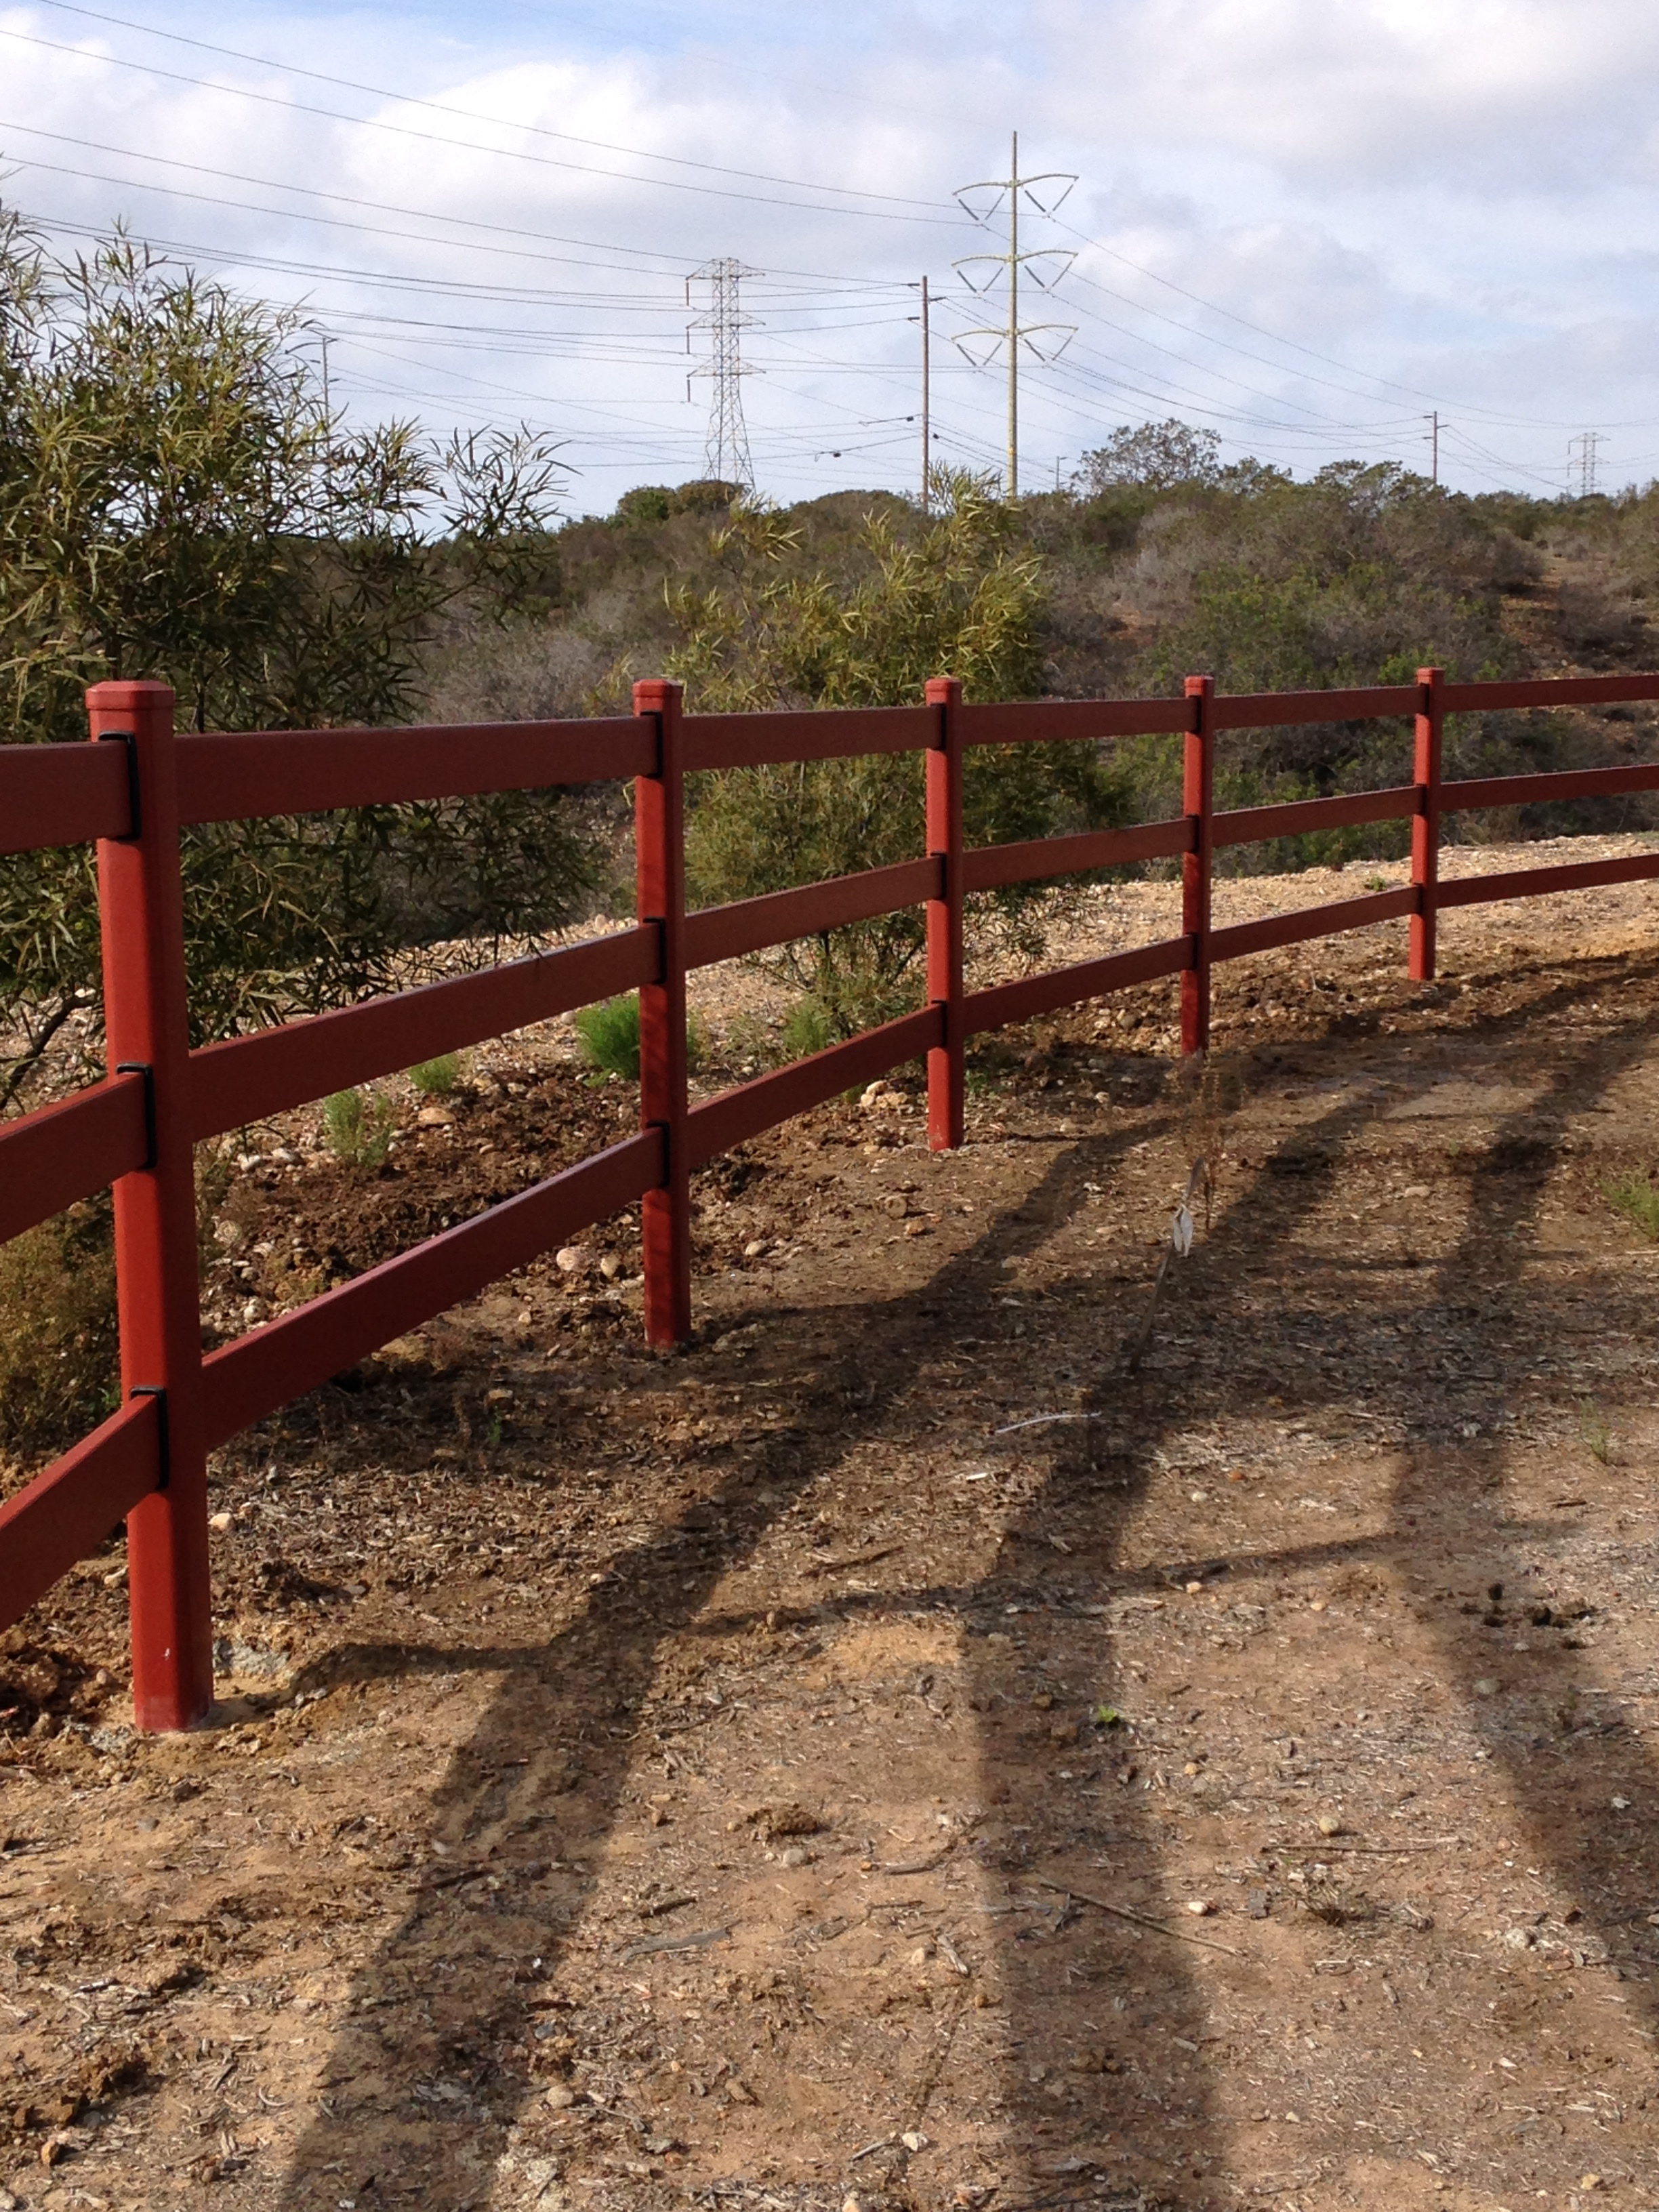 5'FT HIGH 3-RAIL STEEL RANCH RAIL AT MIRAMAR NAVAL BASE CEMETERY - GB's Fence Company